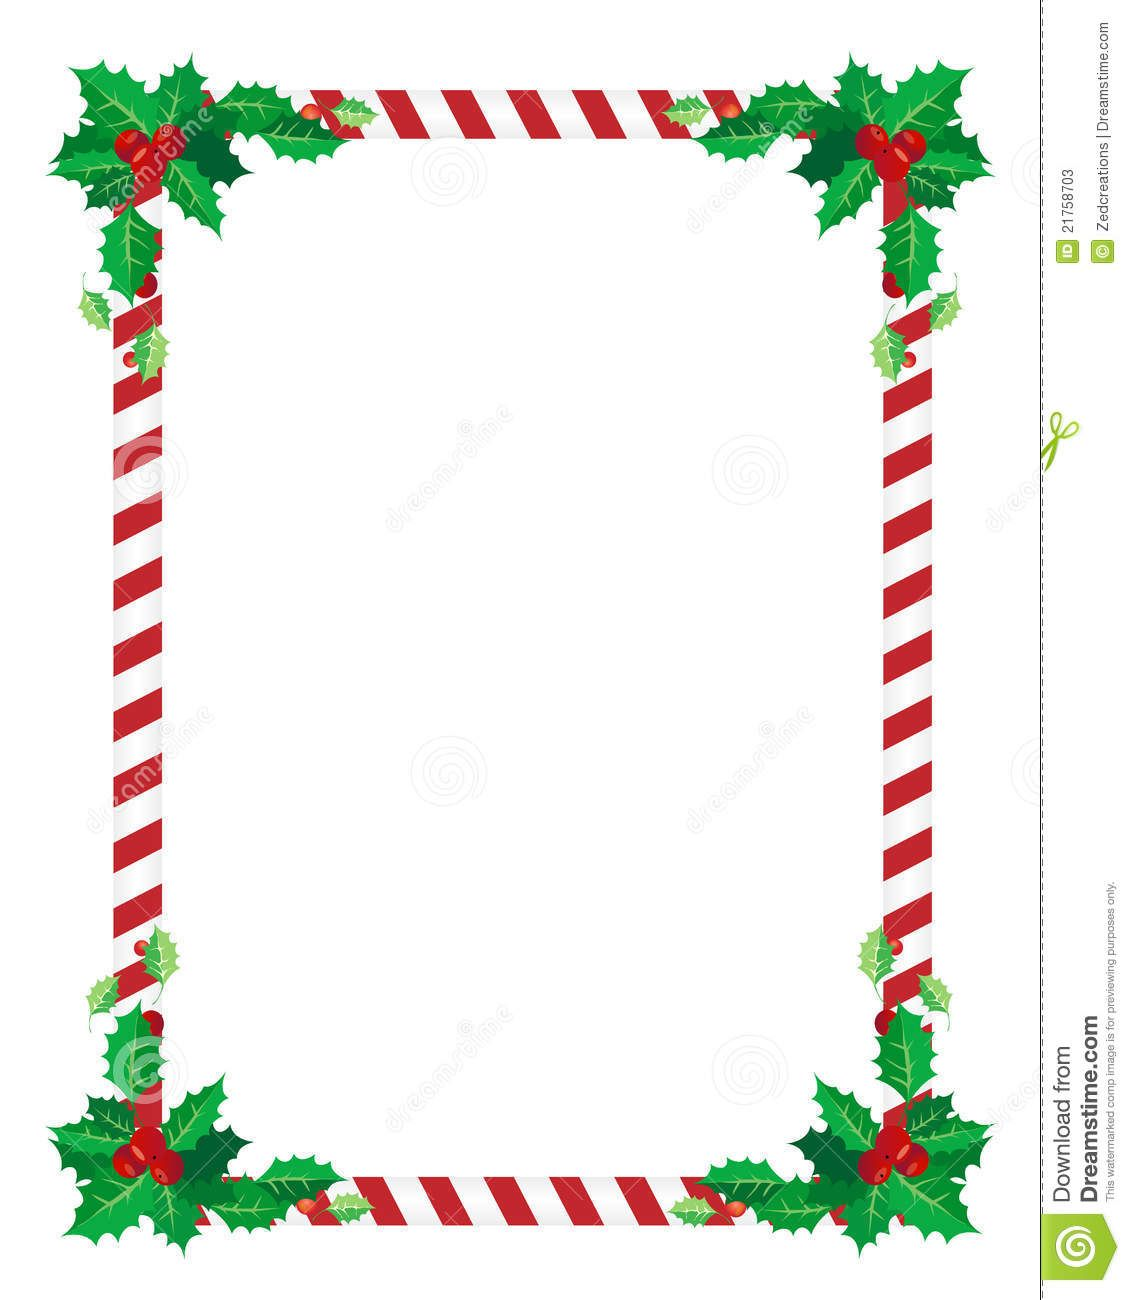 Christmas Card Border.Christmas Card Borders Christmas Card Borders Clipart